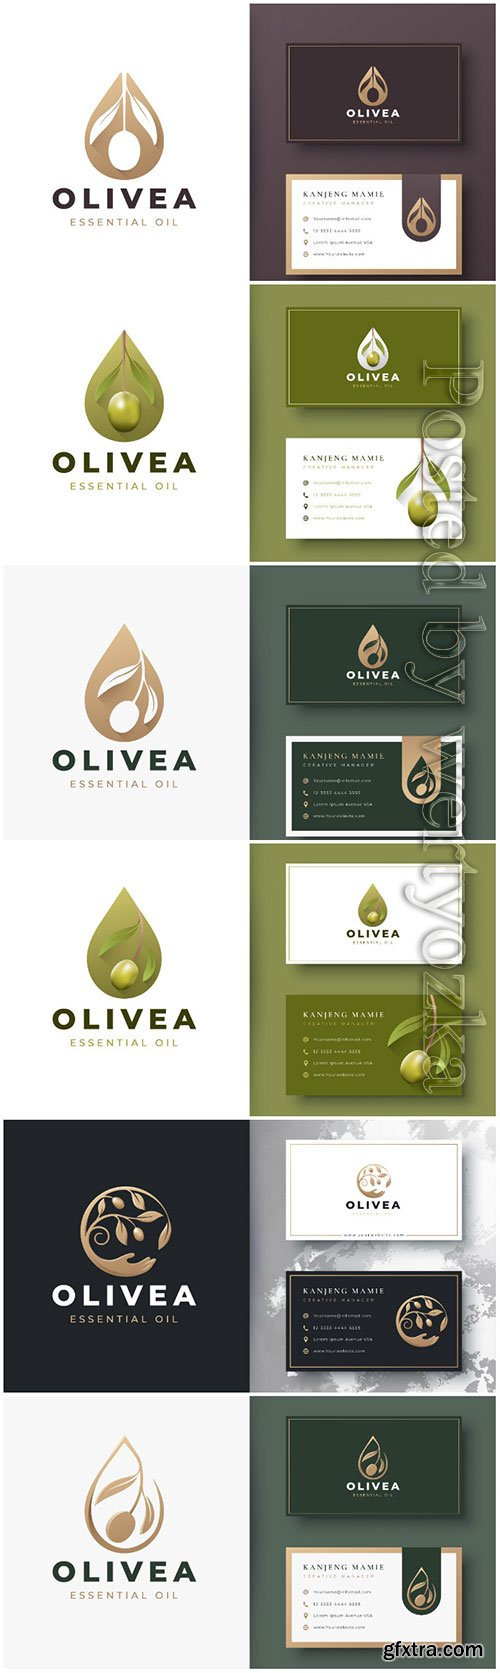 Olive oil logo and business card design premium vector